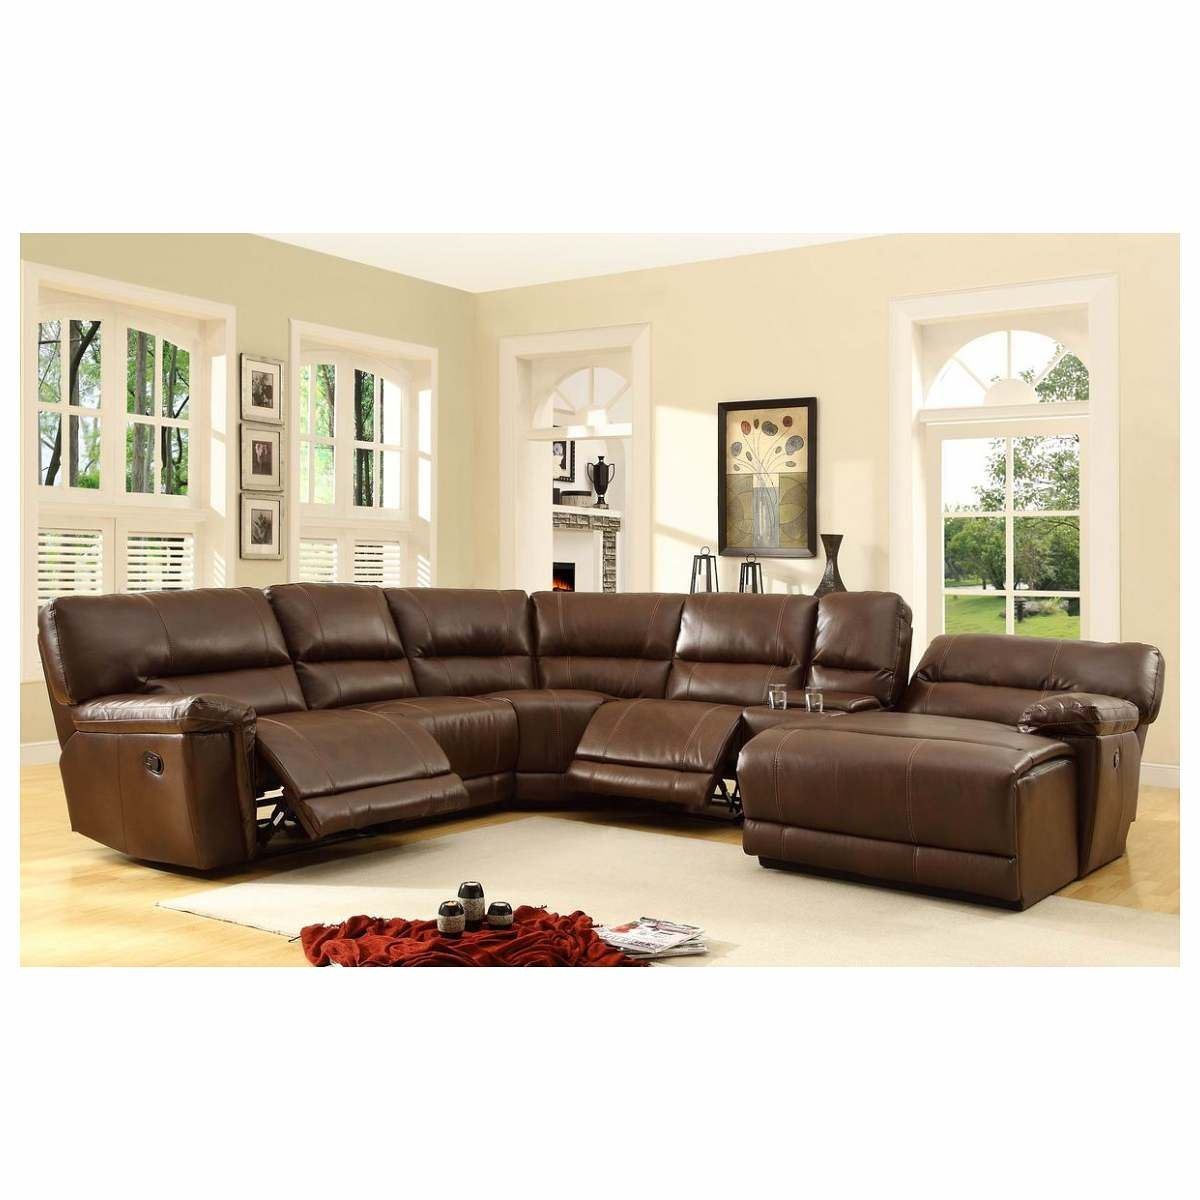 Best 6 Pc Blythe Collection Brown Bonded Leather Match 400 x 300